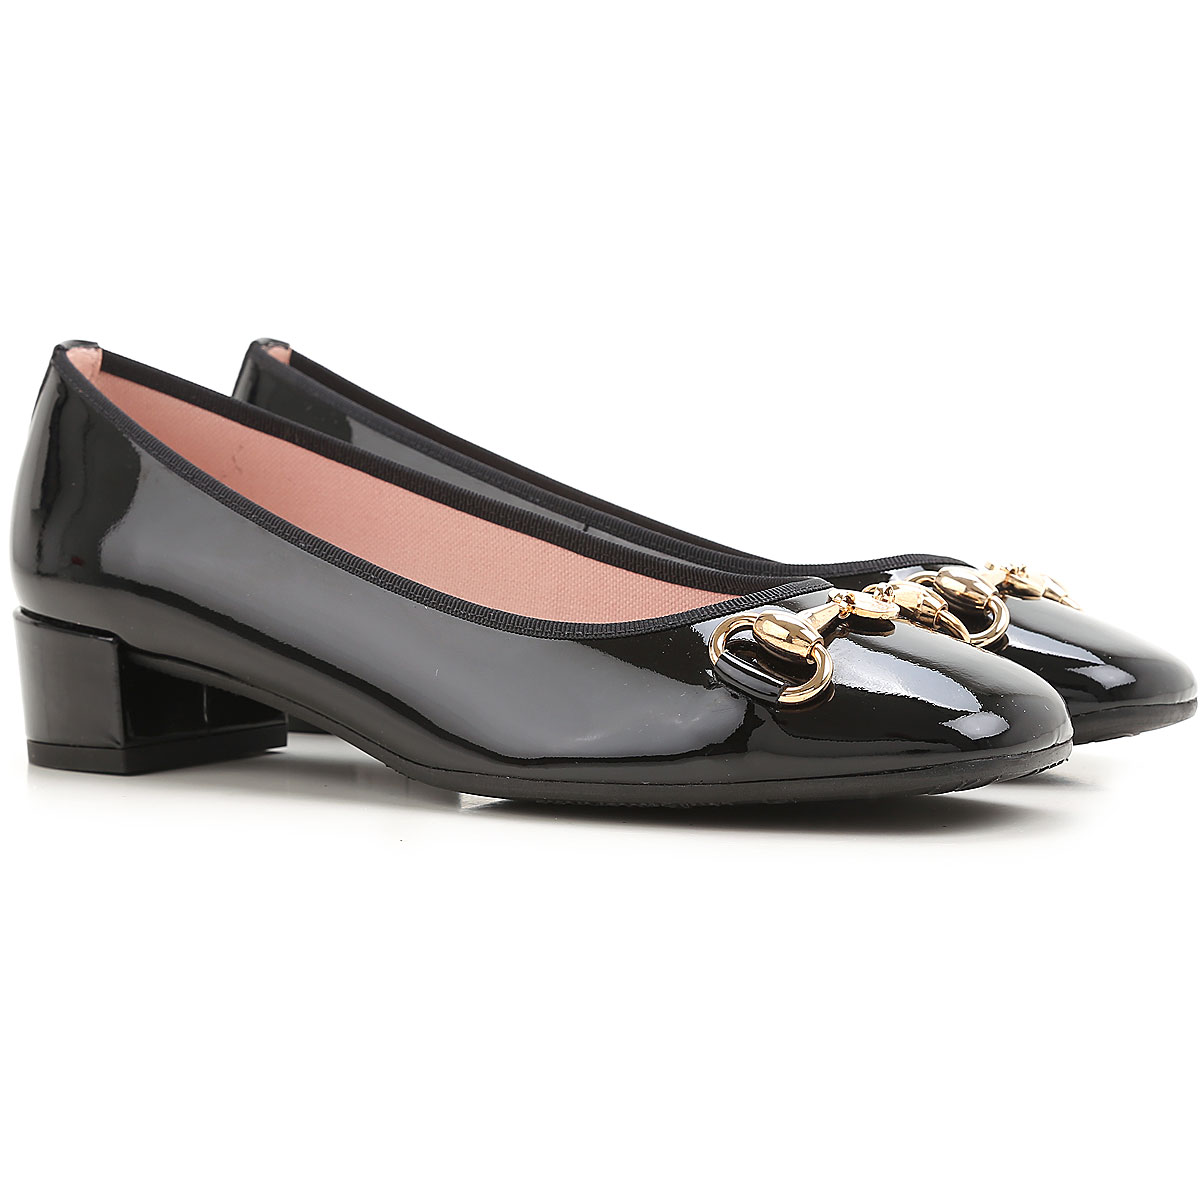 Image of Pretty Ballerinas Pumps & High Heels for Women On Sale in Outlet, Black, Patent Leather, 2017, 7 8